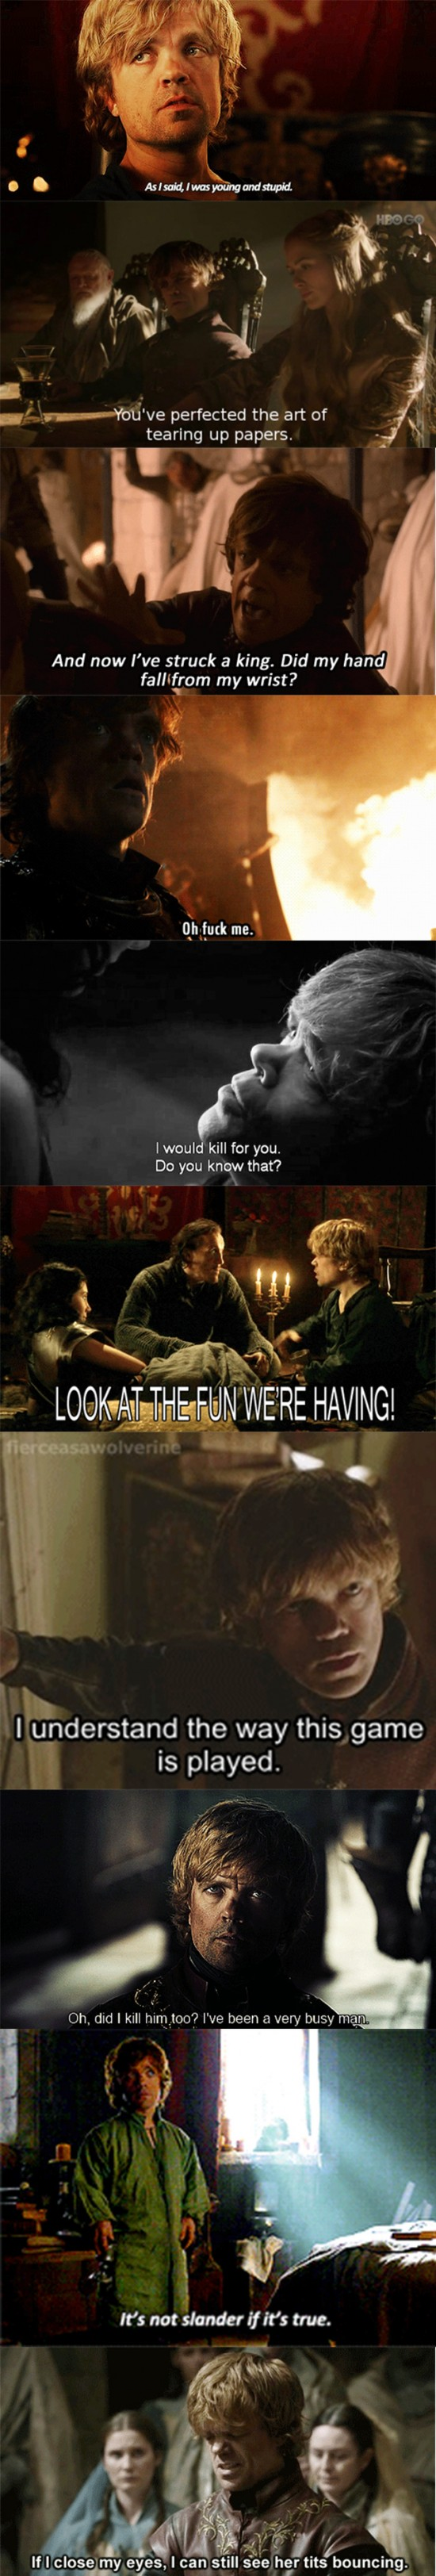 epic tyrion lannister lines game of thrones 1